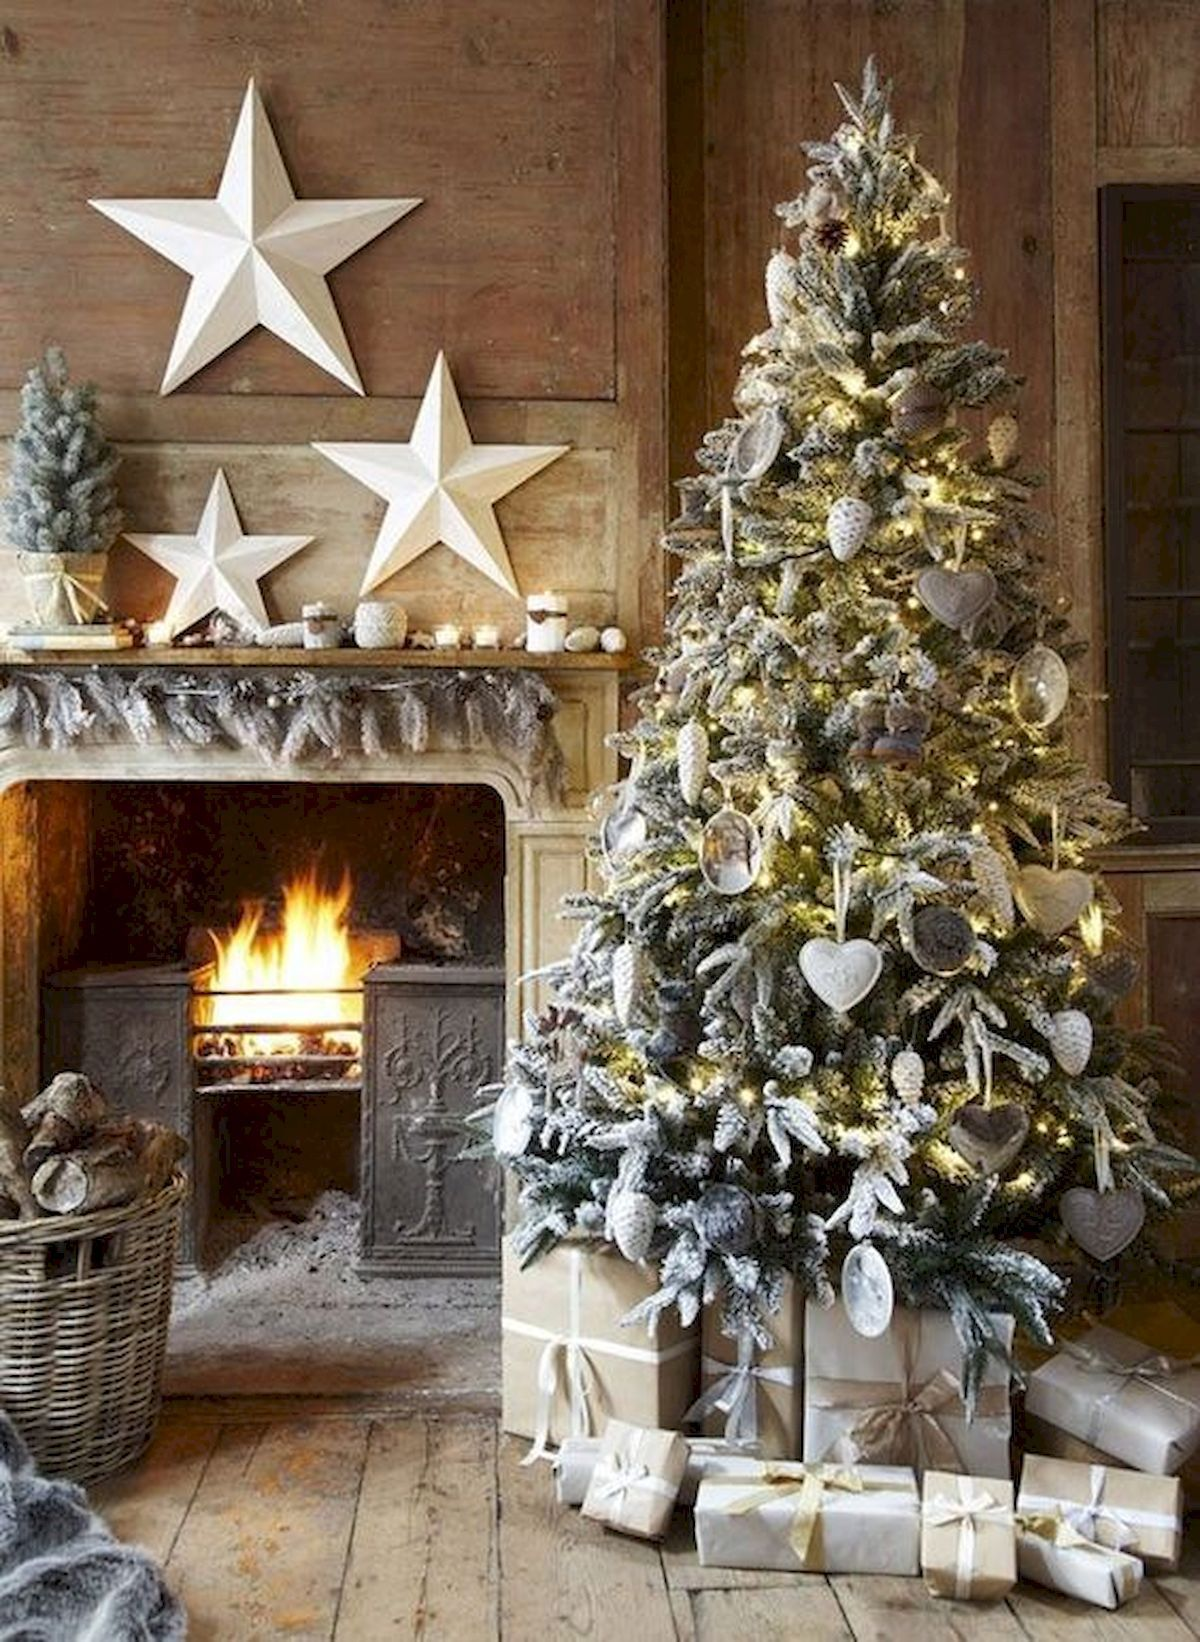 Gorgeous 60 Awesome Christmas Tree Decorations Ideas Httpsroomadnesscom2018